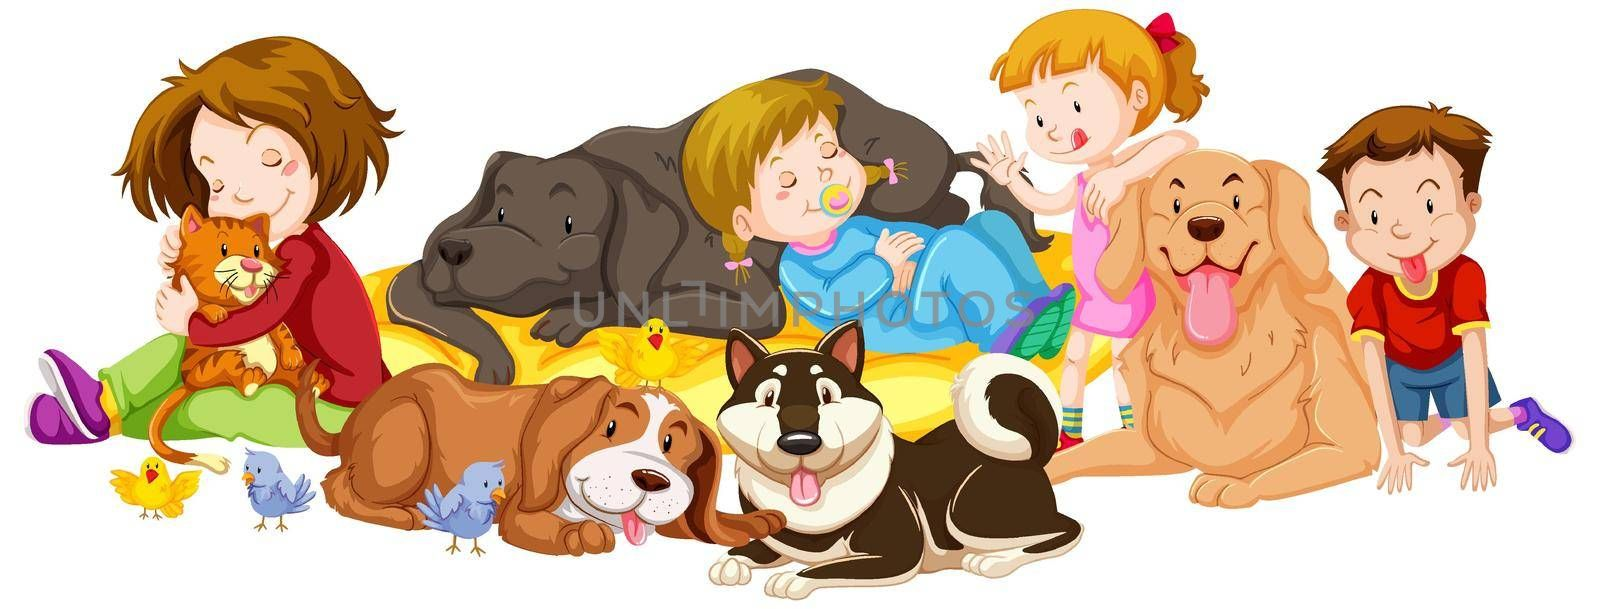 Many kids and pets on white background illustration